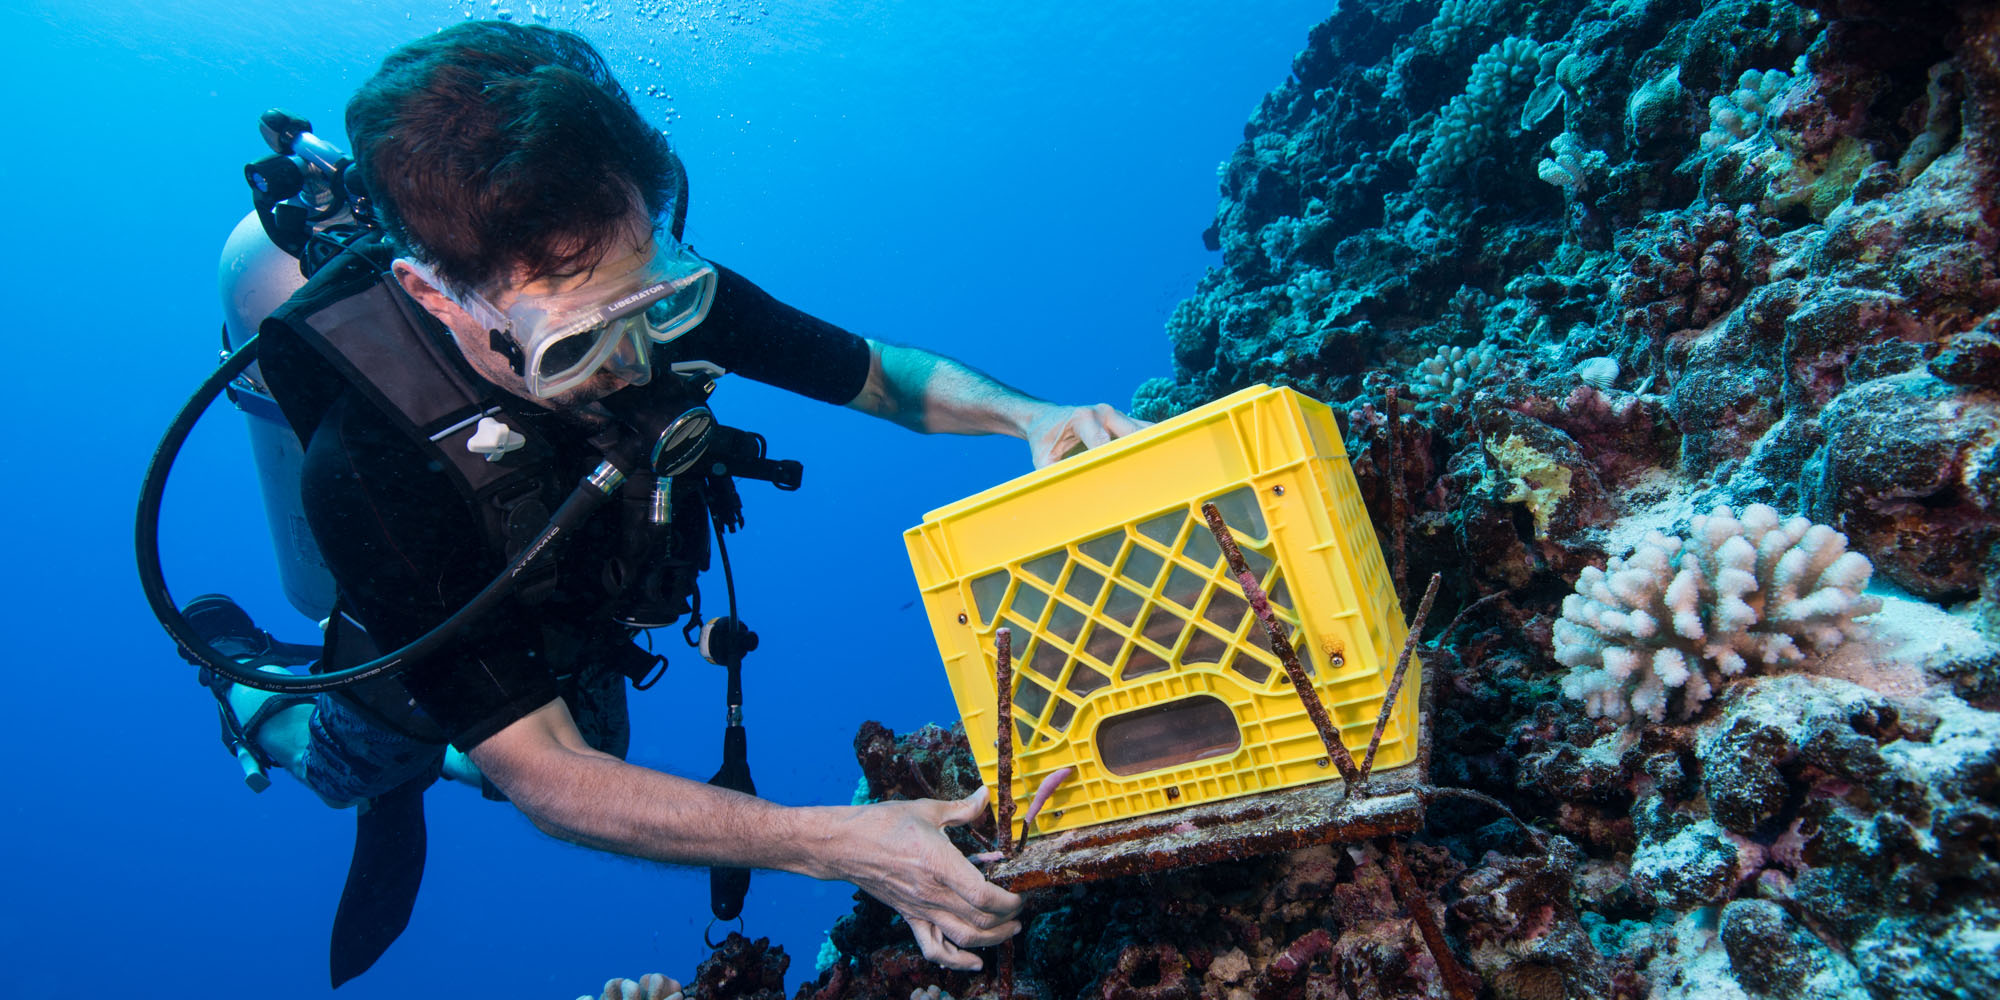 a diver places a mesh-lined crate over on a coral reef.